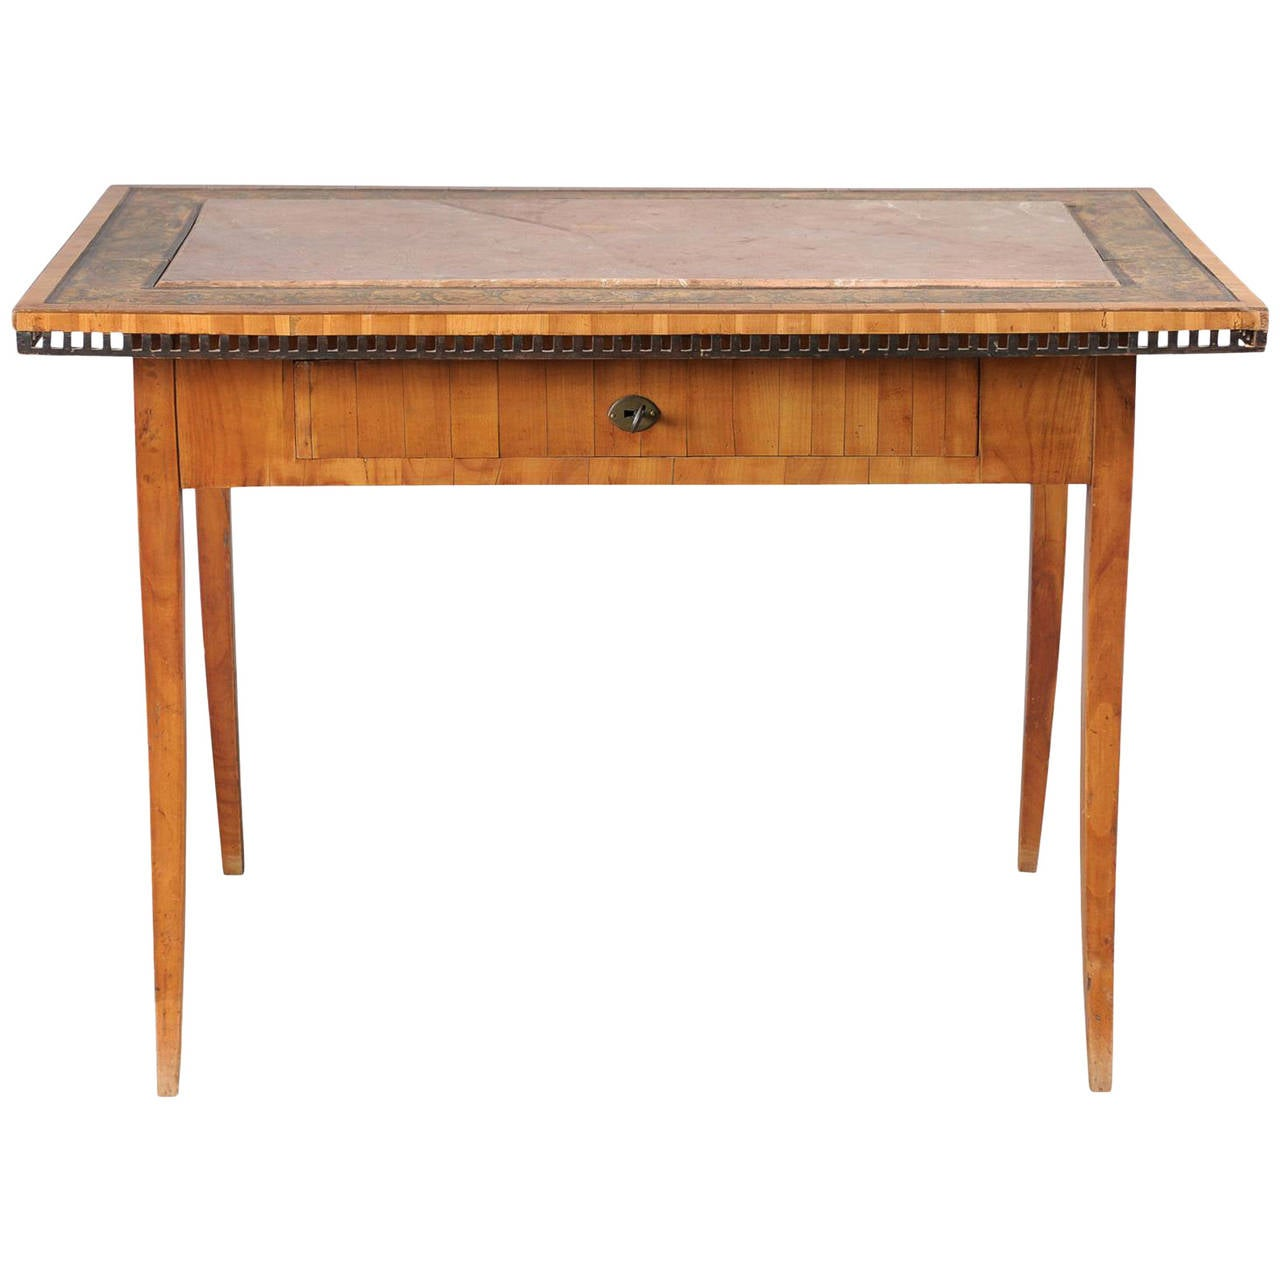 Austrian Table/Writing Desk with Inset Stone Top and Painted Border, circa 1810